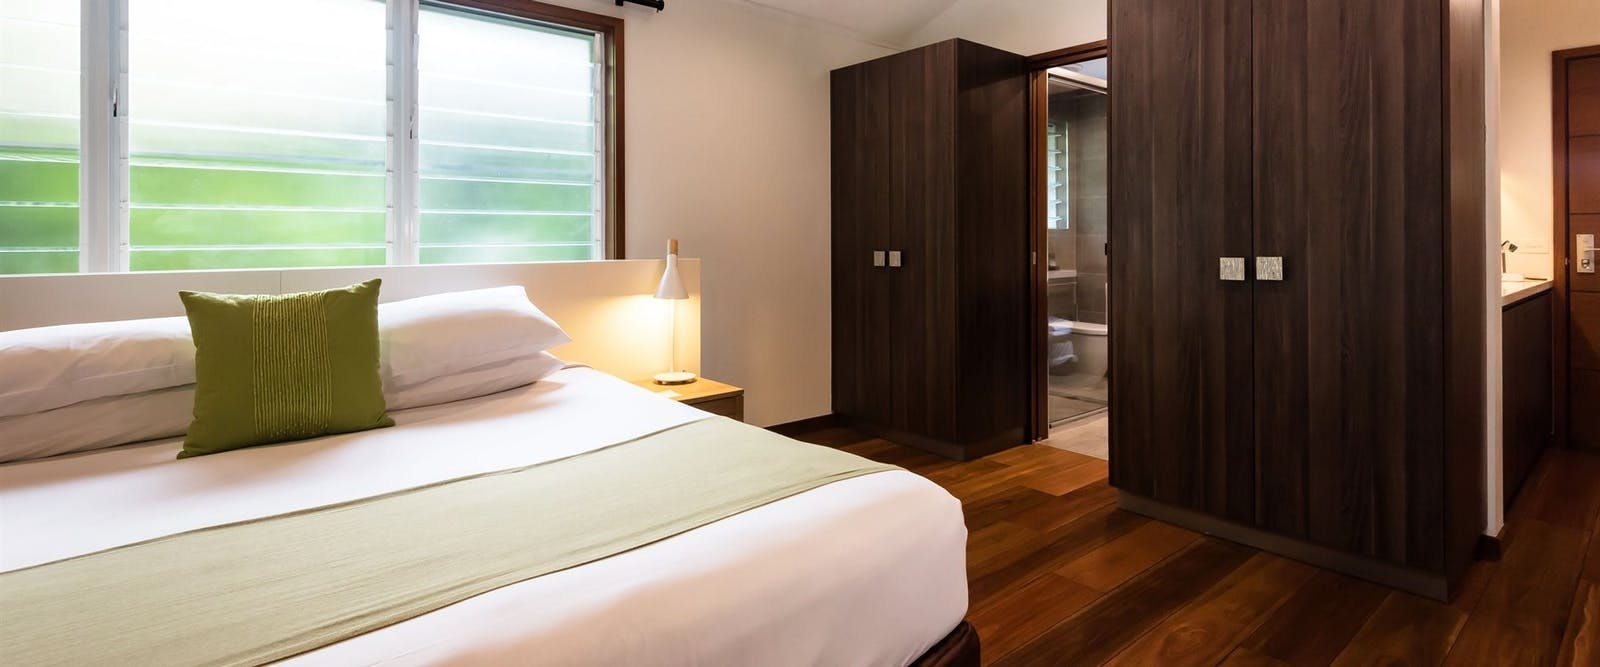 Bedroom interior, Daintree Eco Lodge and Spa